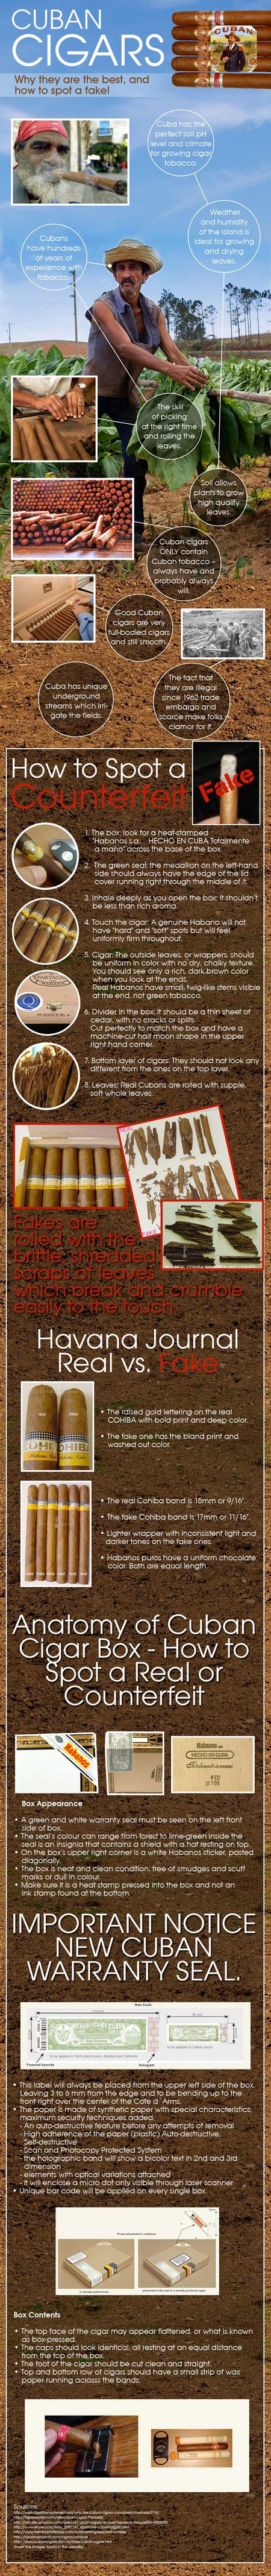 cuban cigars - fake or real